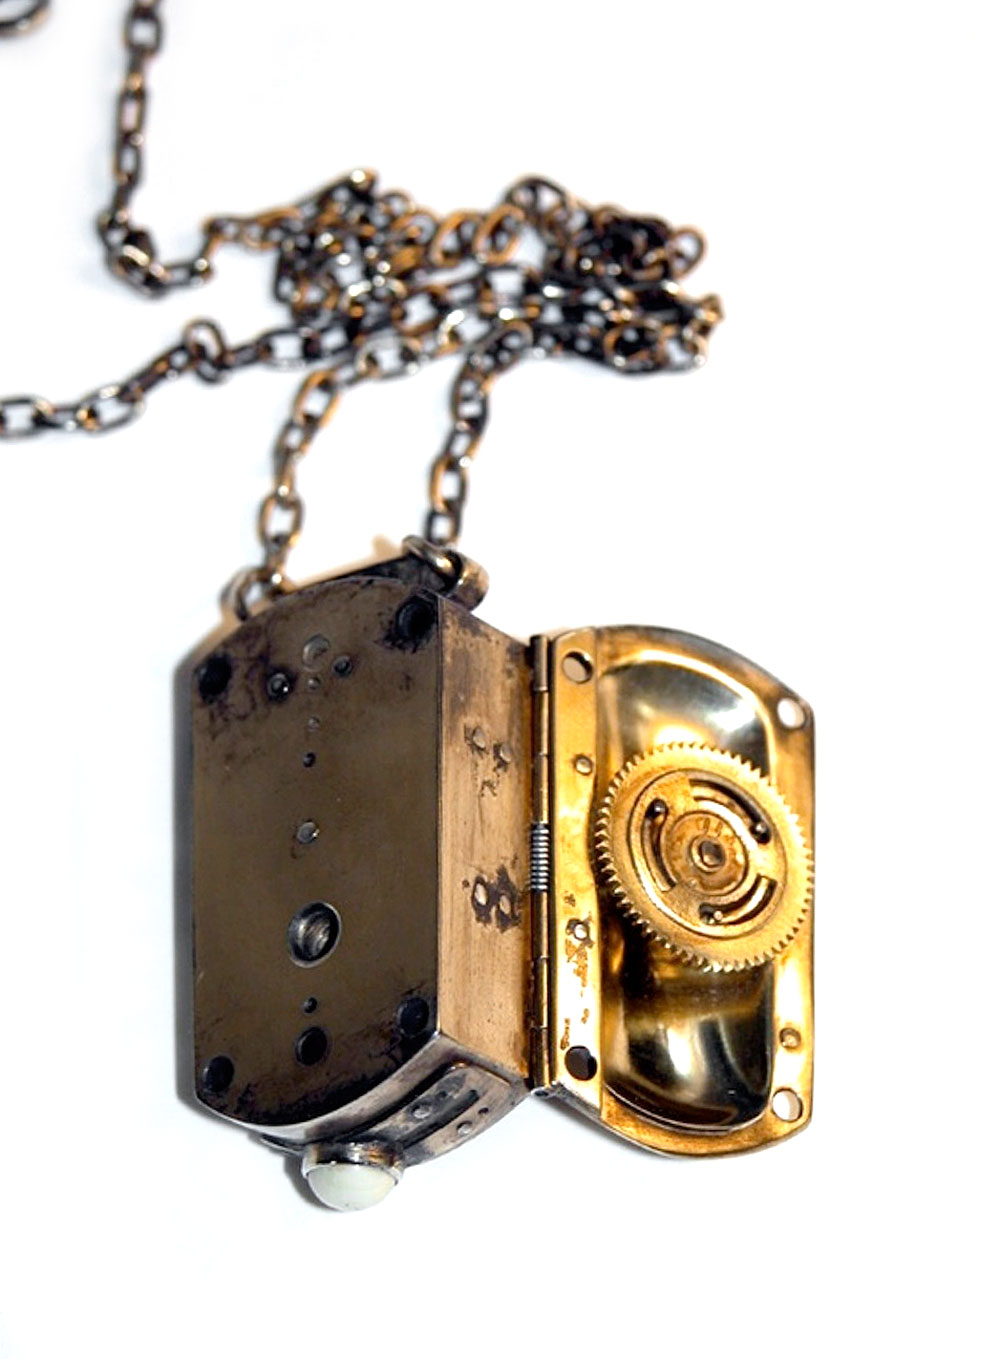 Anastasia Young. Necklace: Switch Locket #2, 2004. Gold plated sterling silver, stainless steel, bone. 2 x 1.2 x 5 cm.